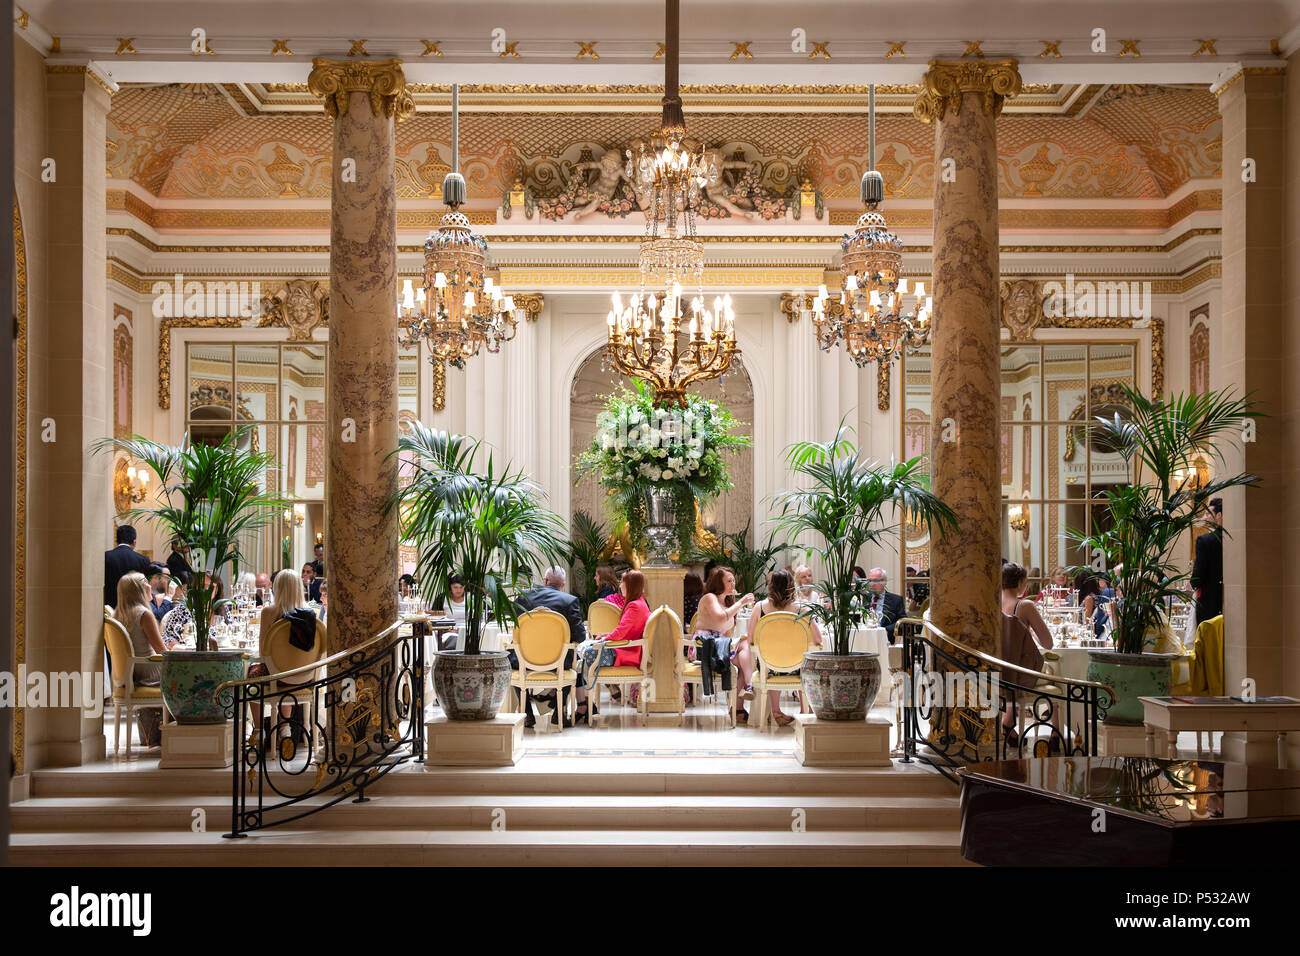 The Ritz Hotel, London. The Palm Court, which serves 'Tea at the Ritz'. Afternoon tea. - Stock Image